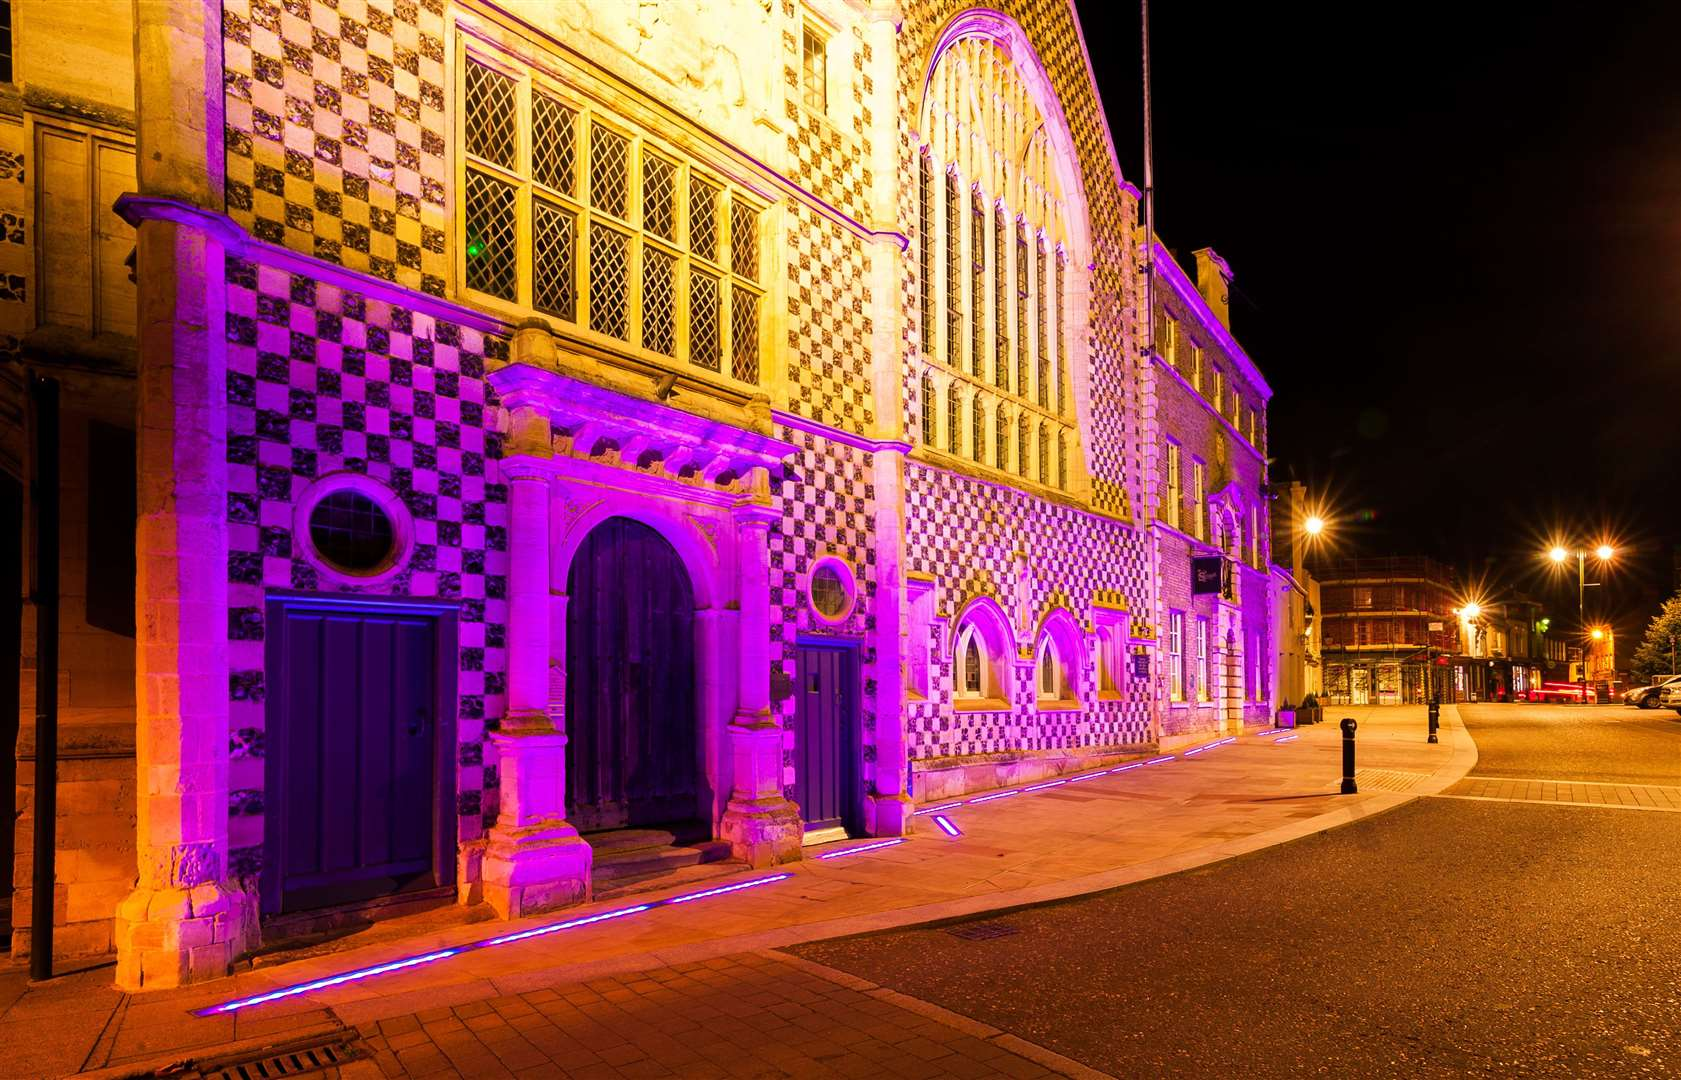 The Town Hall in King's Lynn was illuminated purple on Thursday night, for World Pancreatic Cancer Day.. (43207298)